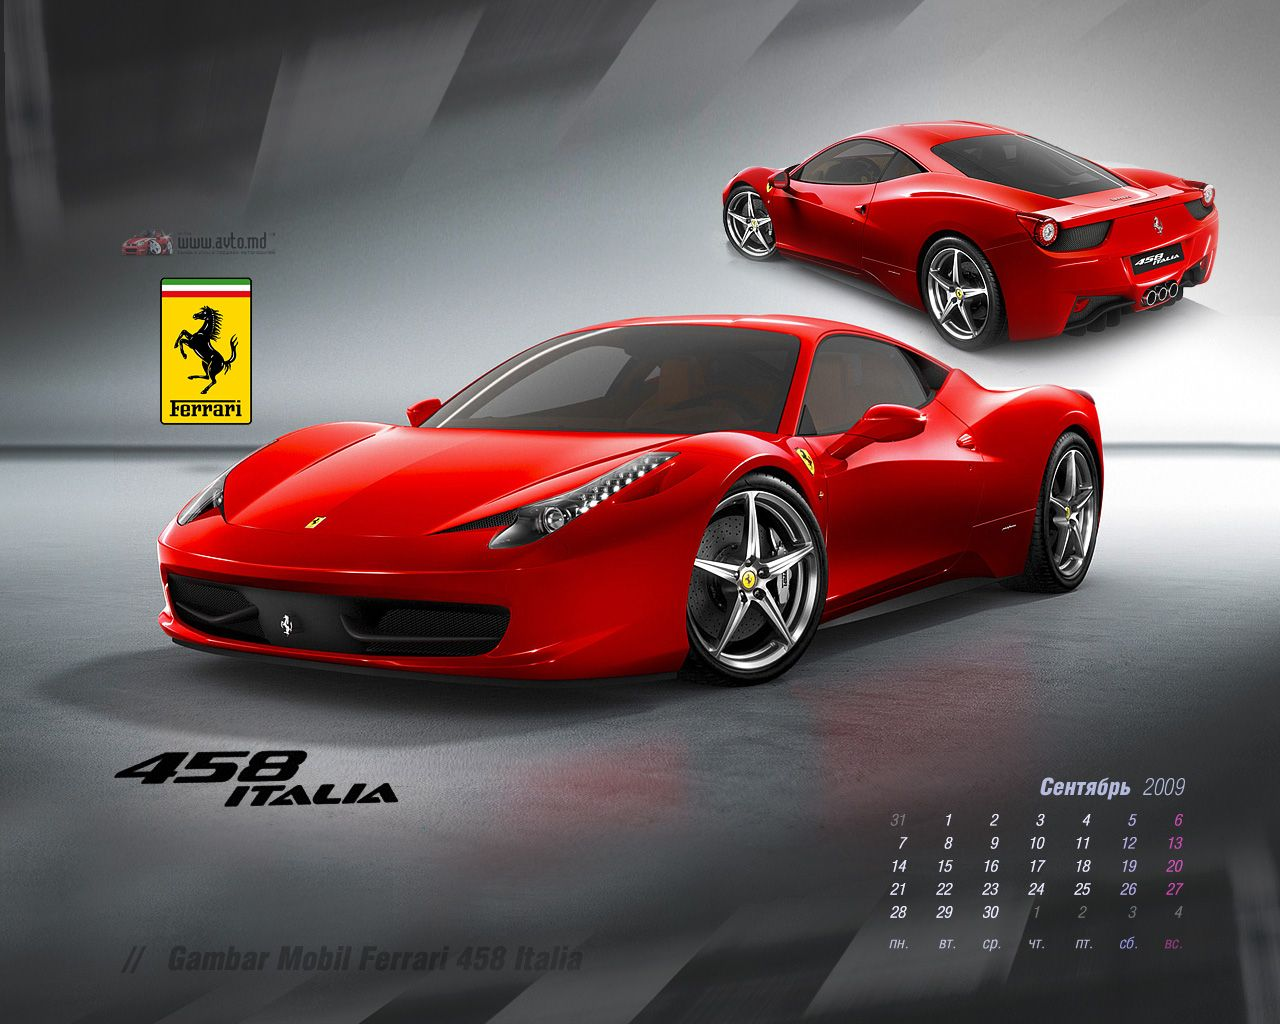 Wallpaper Mobil Sport Modifikasi Hd Modifikasi Style